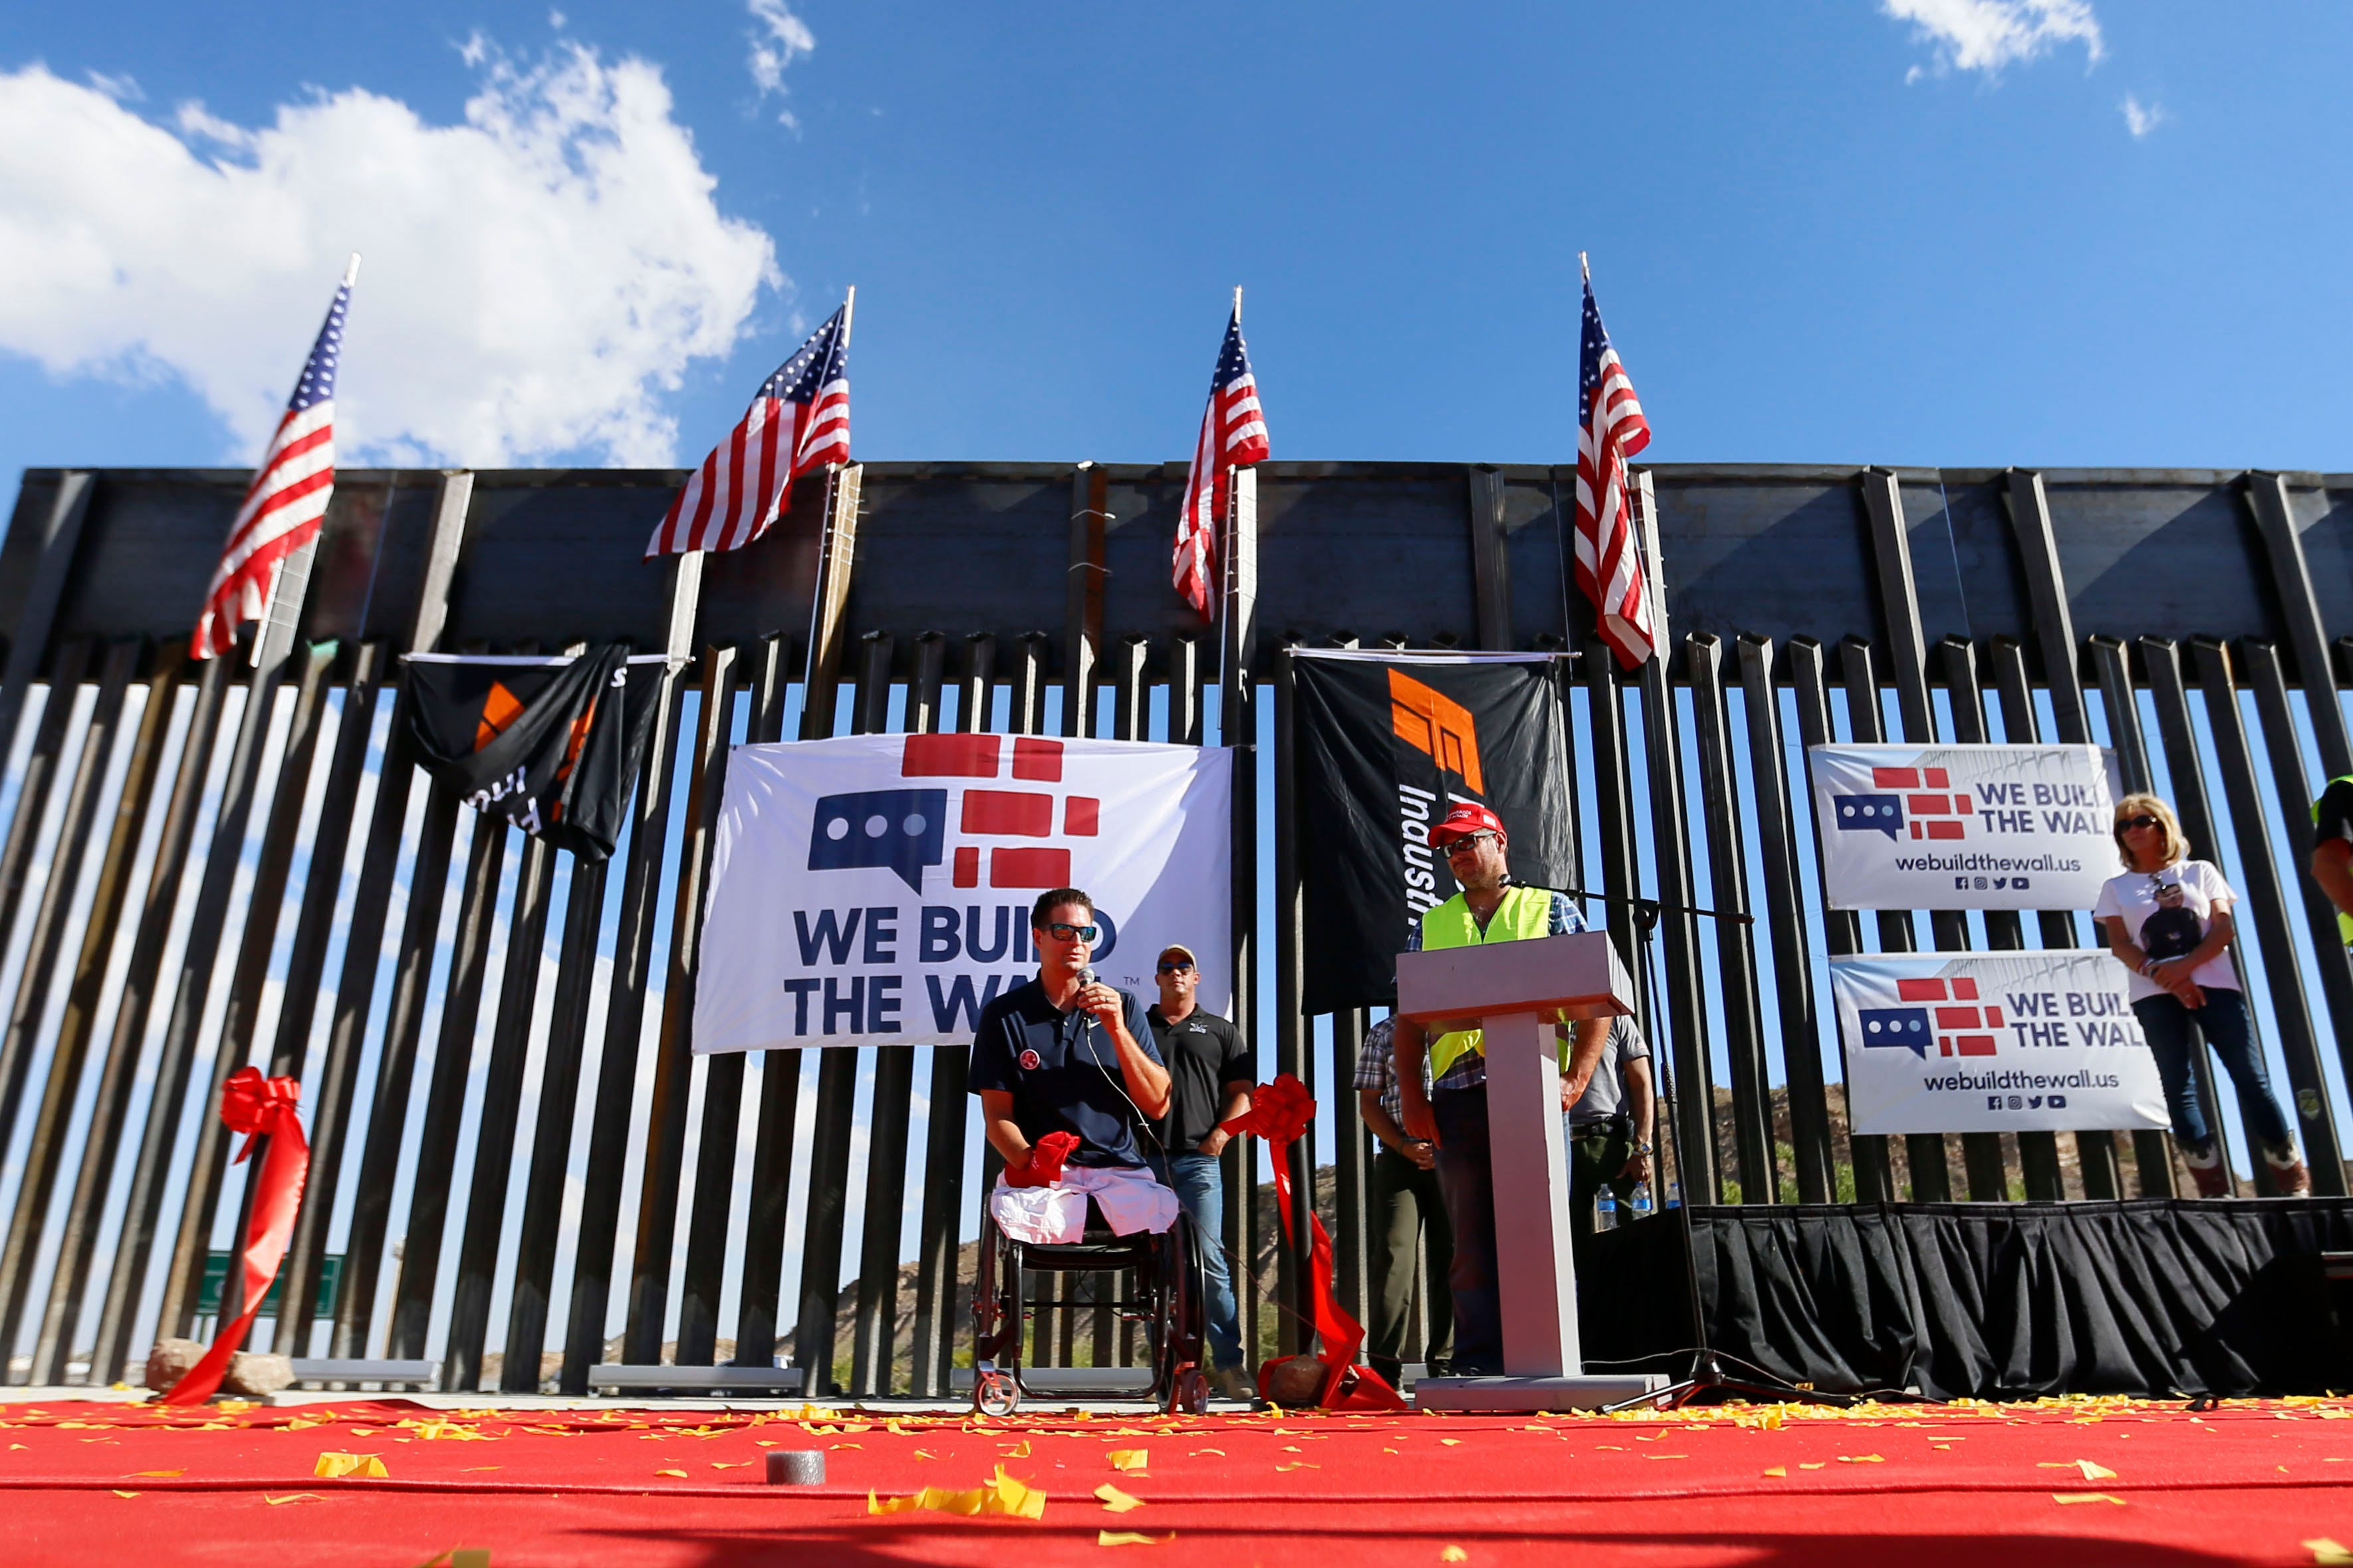 We Build the Wall founder talks about donations